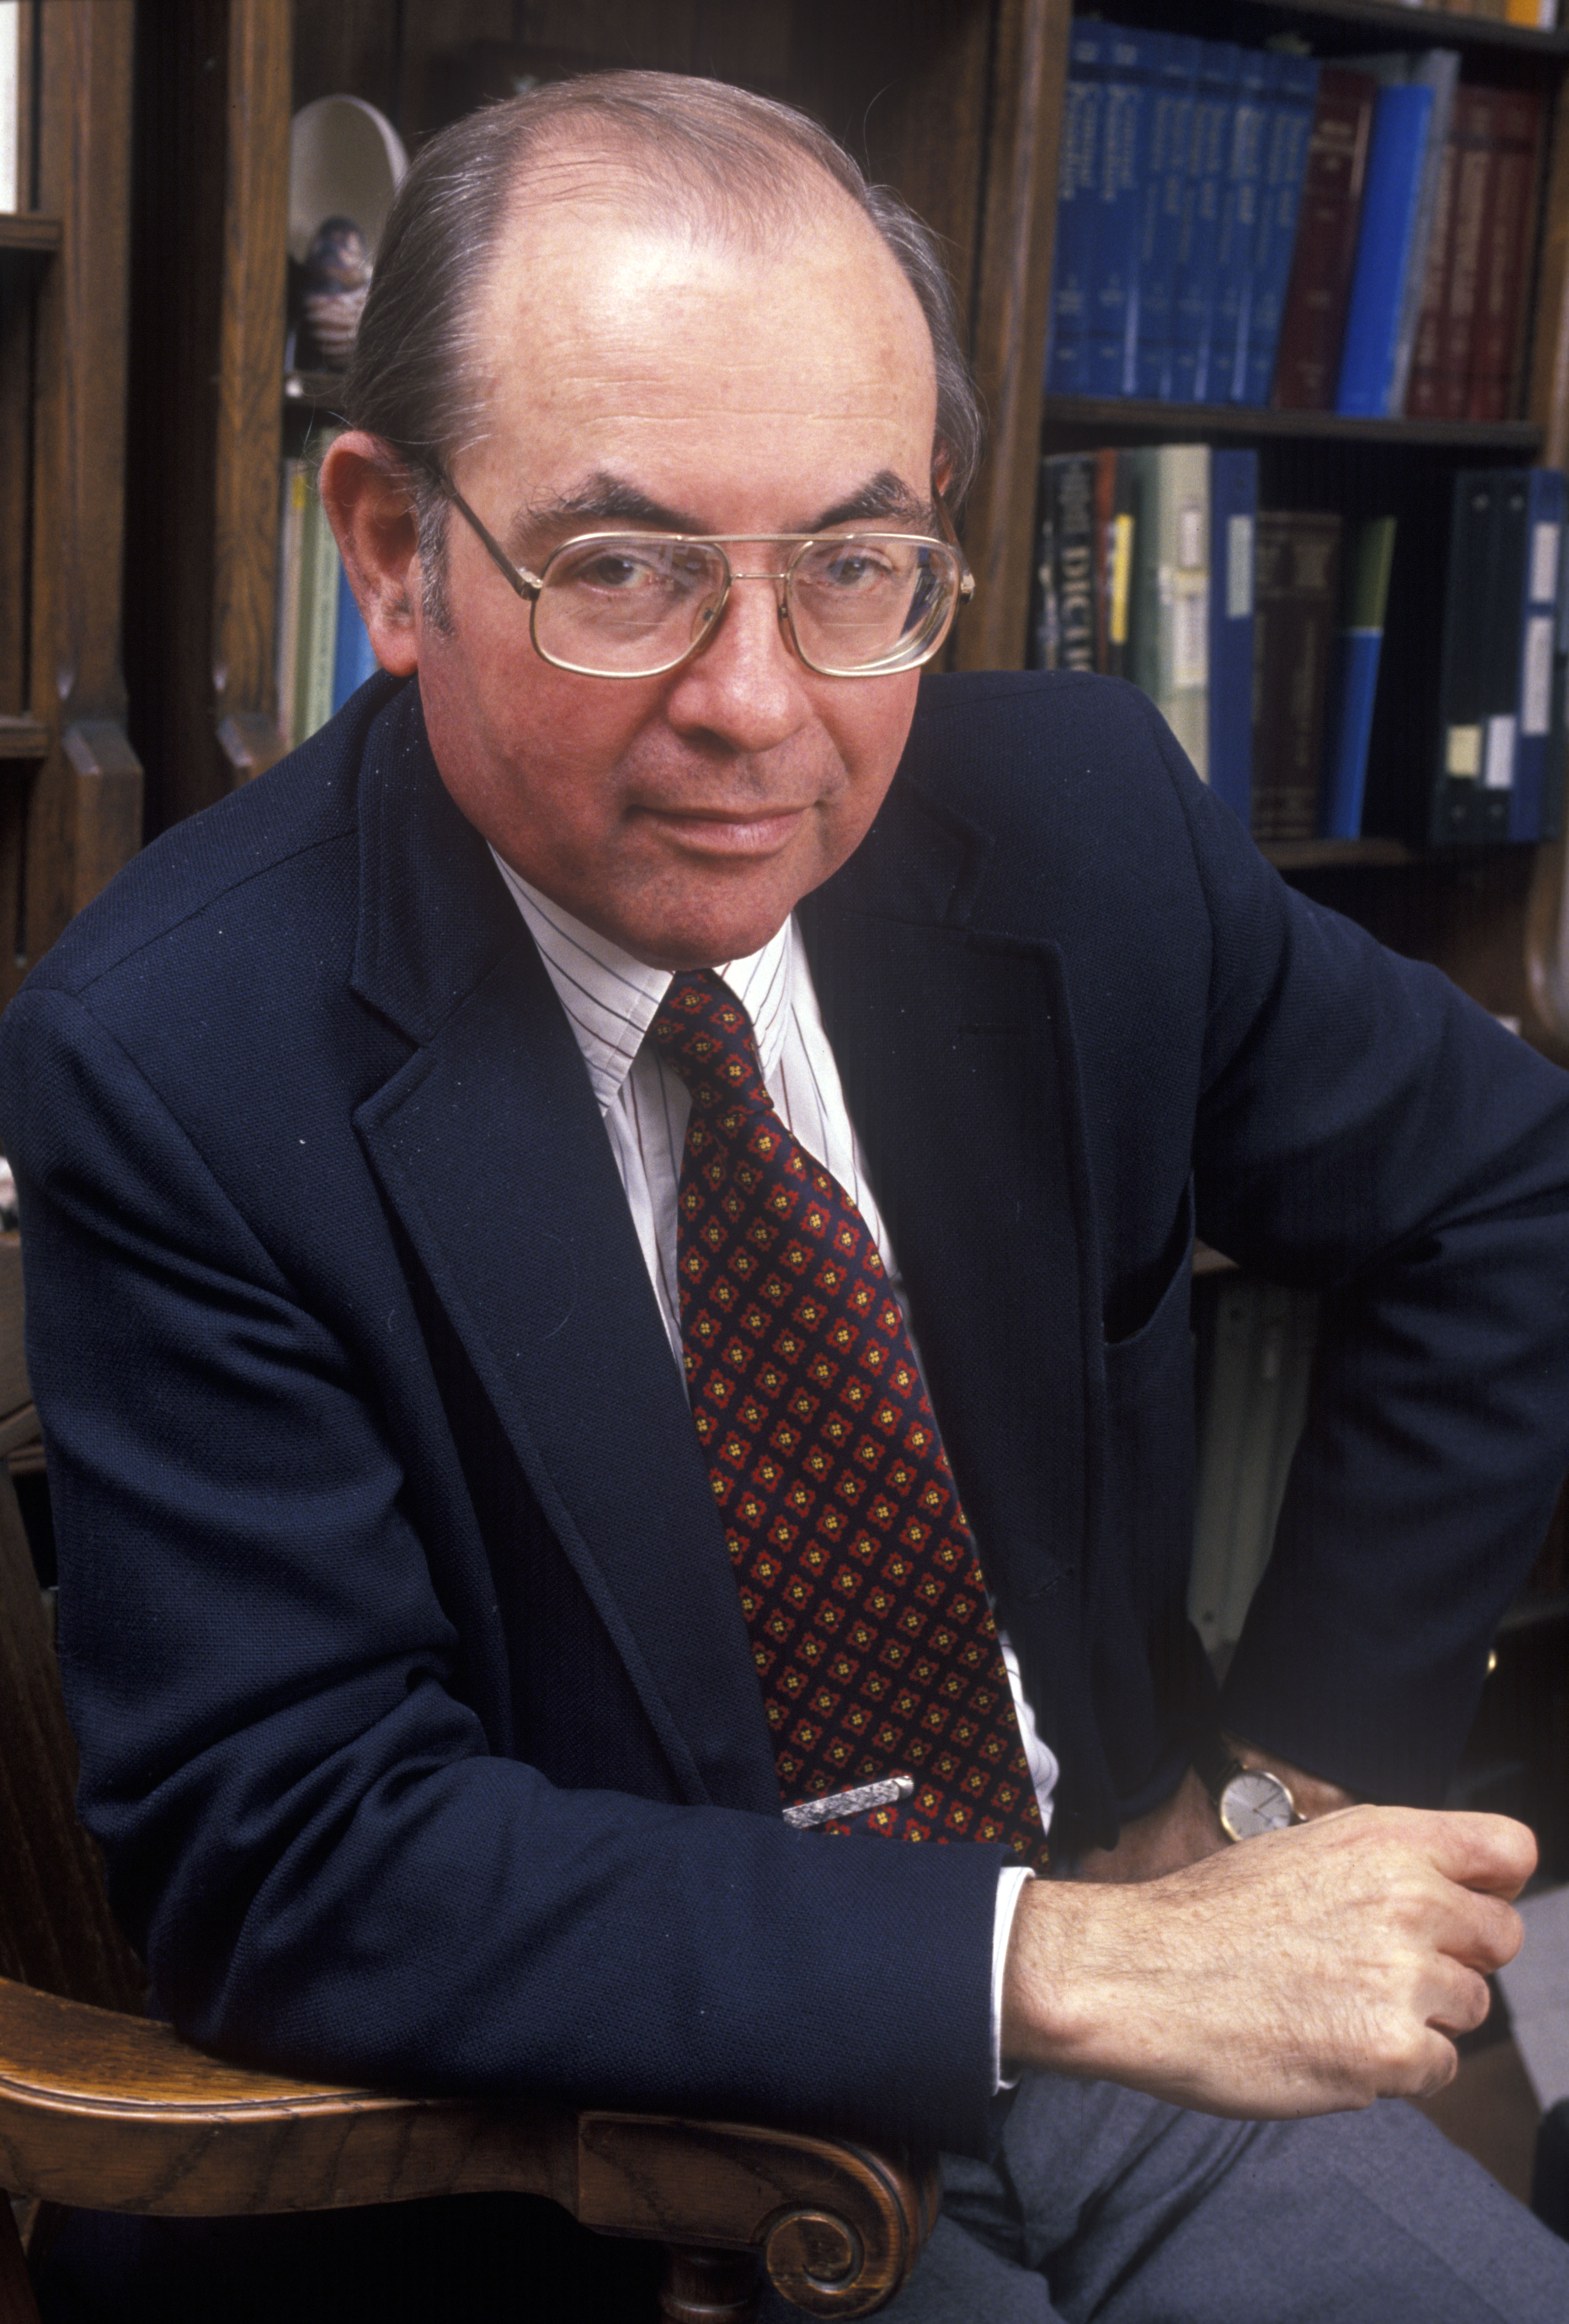 Yale Kamisar, Henry K. Ransom Professor of Law at the University of Michigan, in His Office at the Law School, January 1989 image